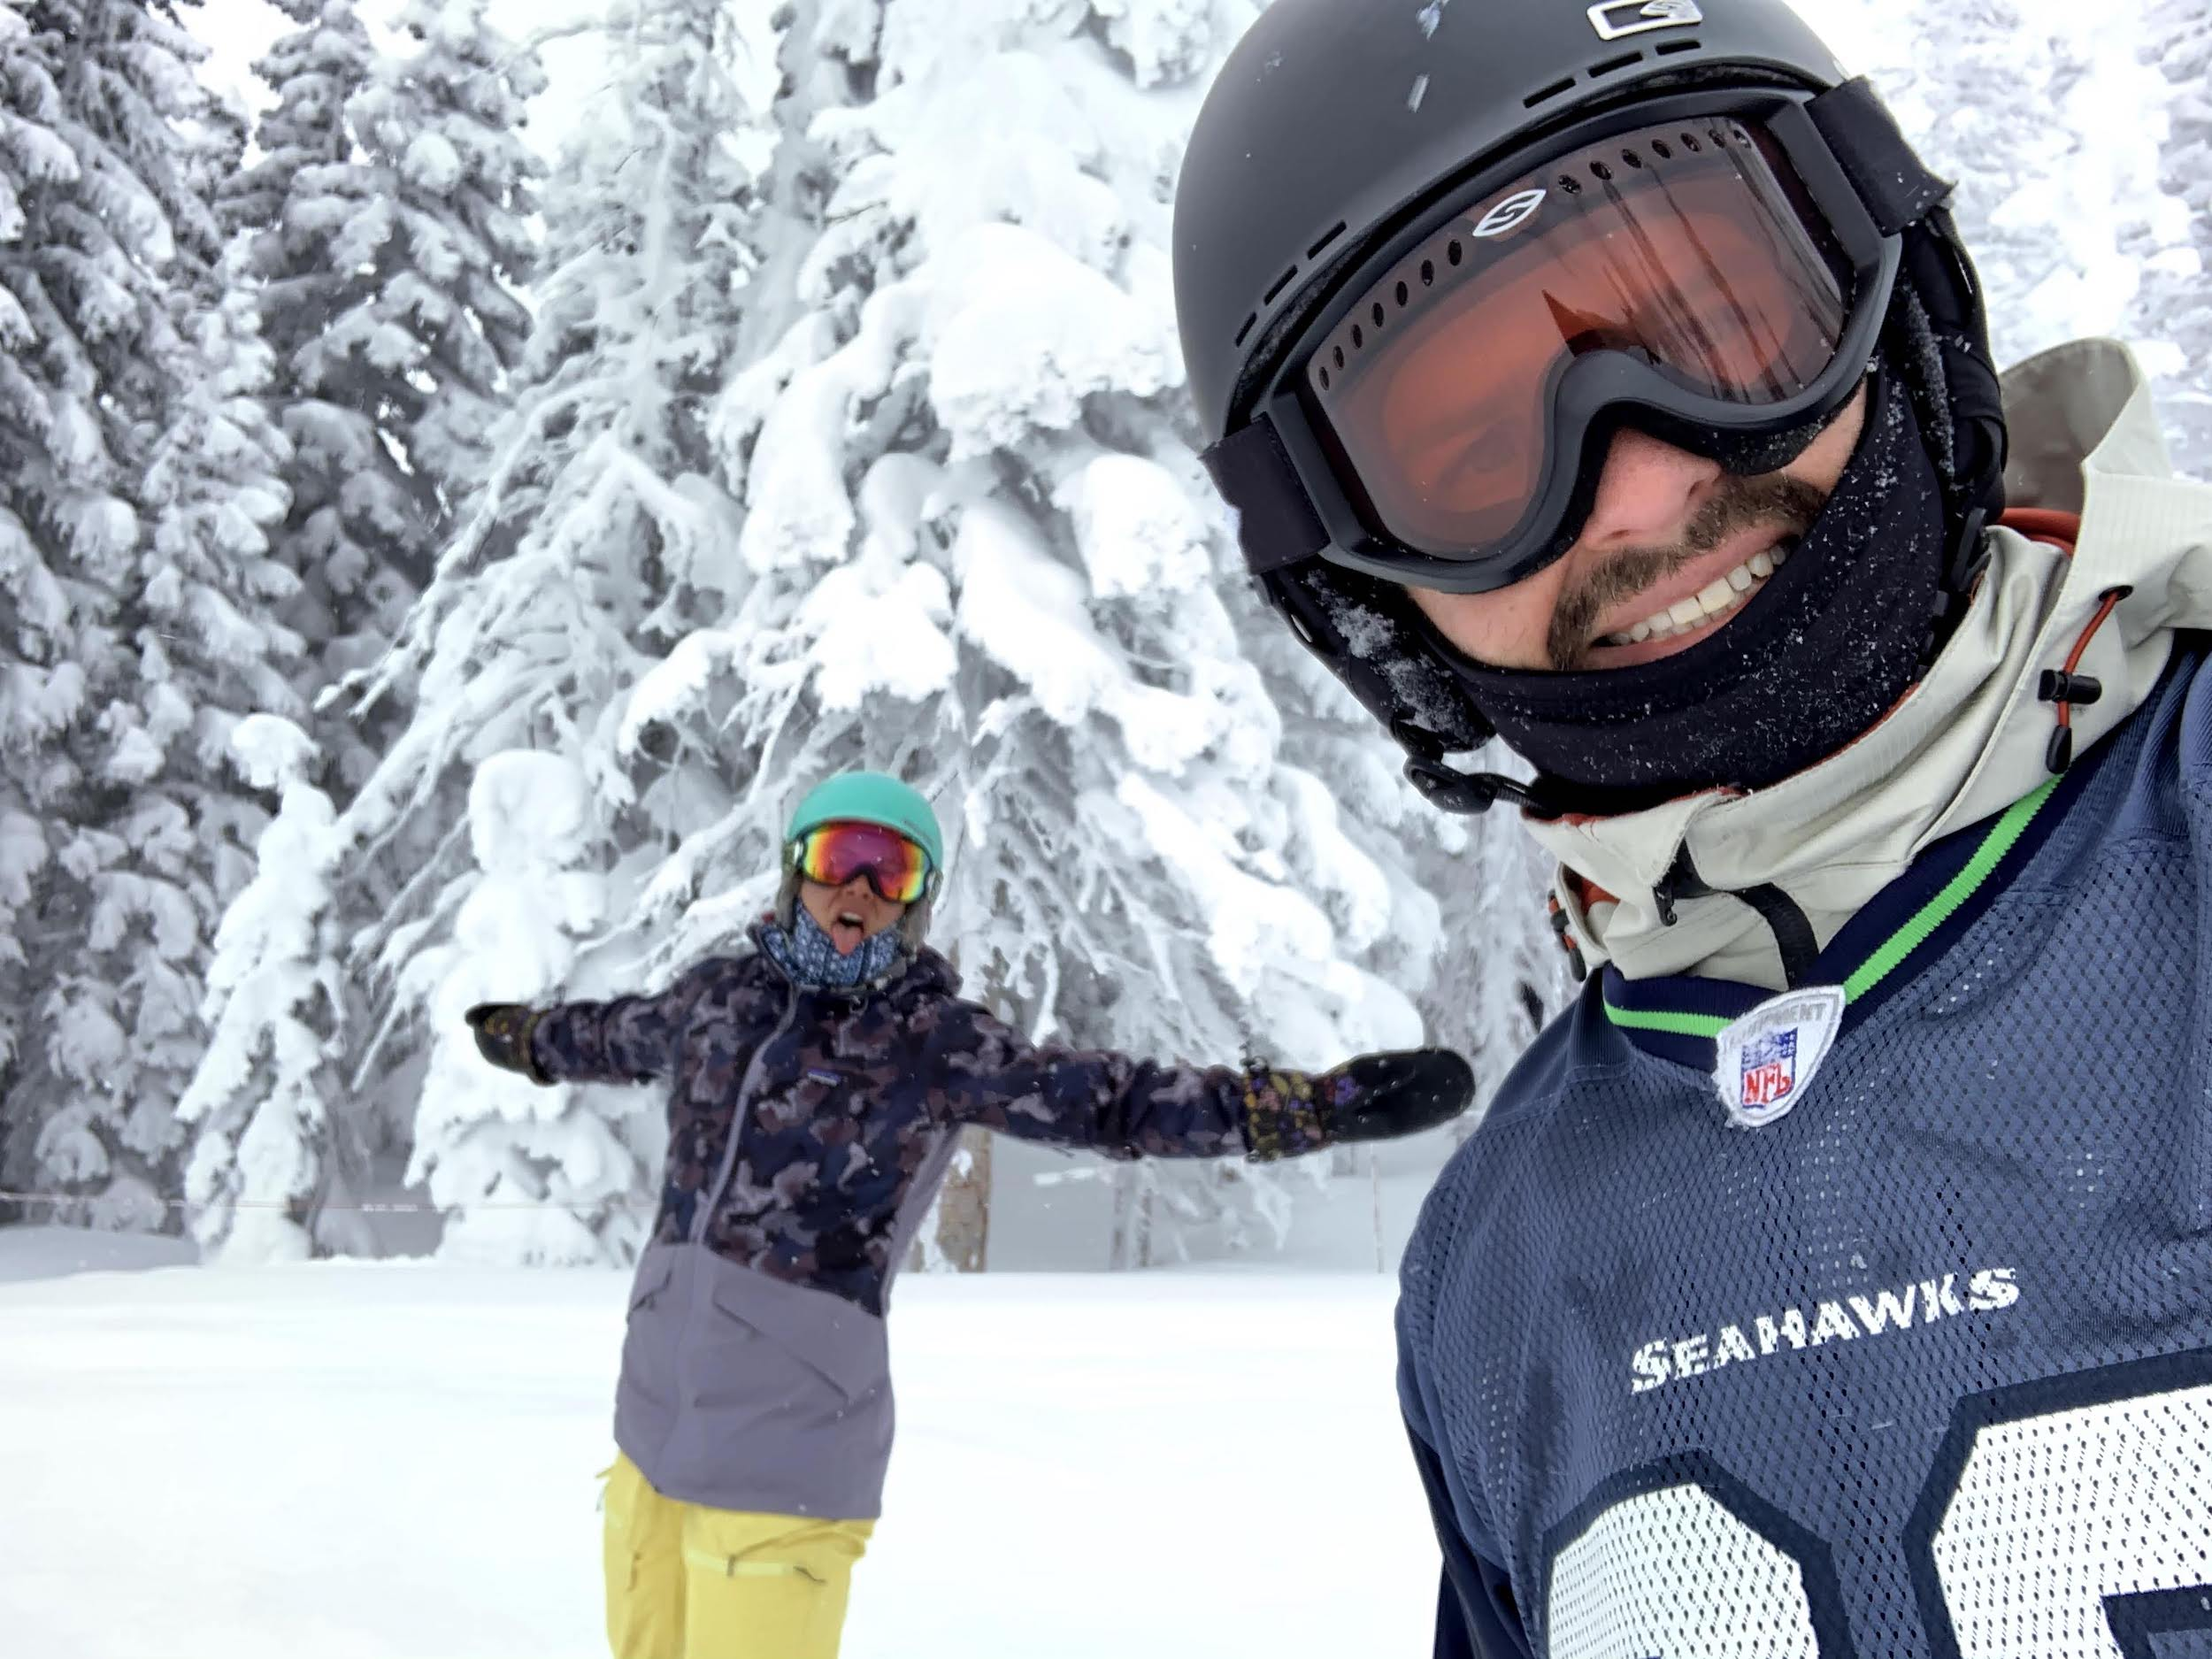 Emily and Joe snowboarding at Steamboat Springs